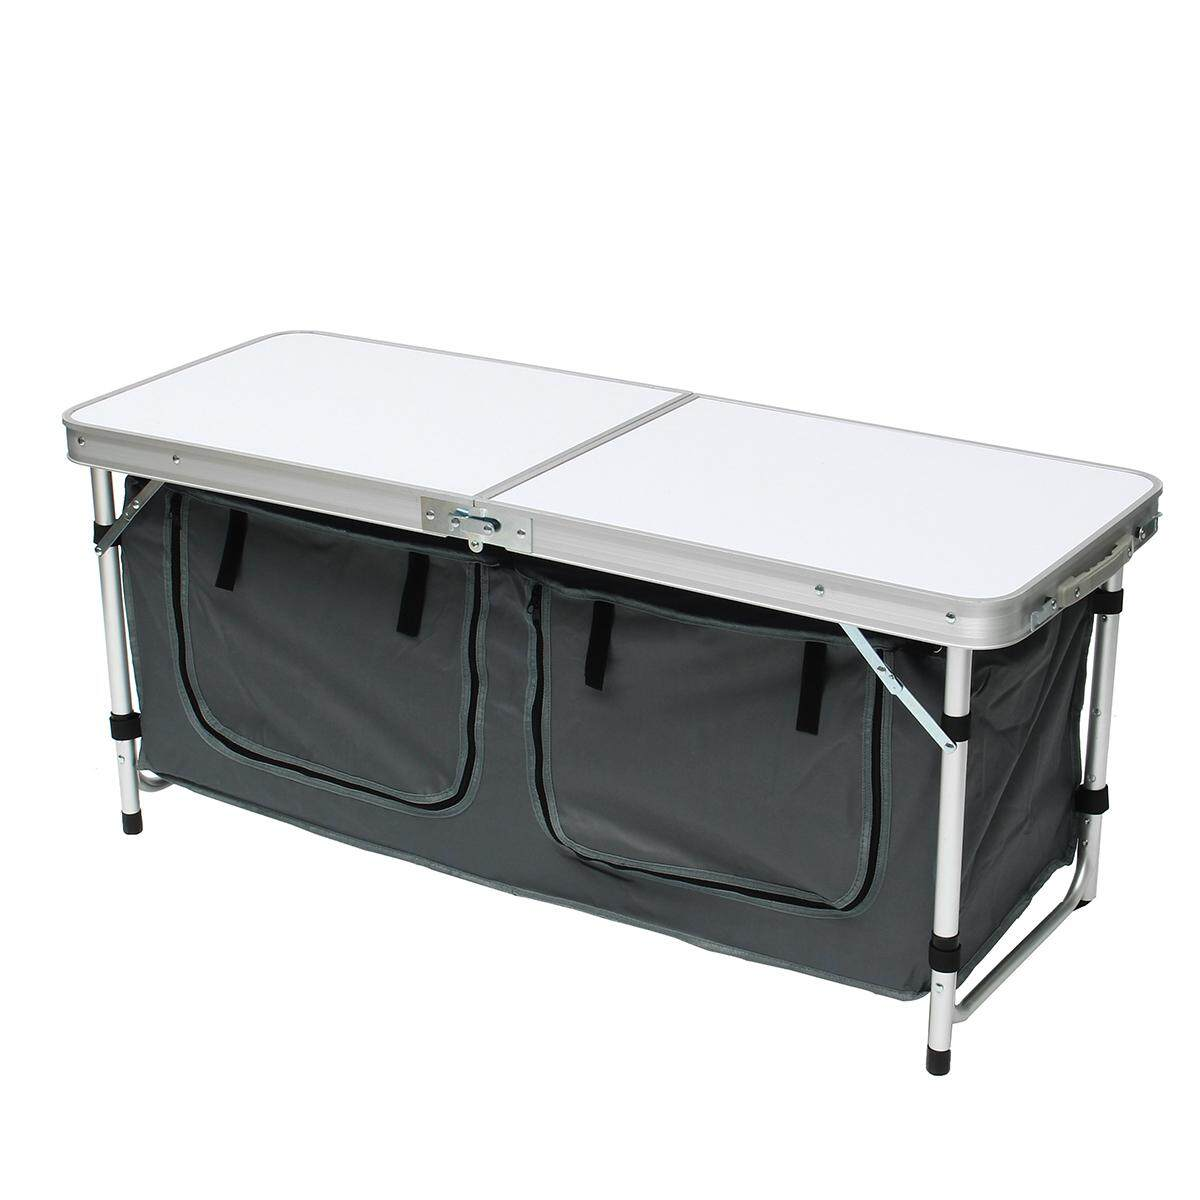 48 Outdoor Portable Aluminum Camping Picnic Folding Table w/ Storage Organizer - intl